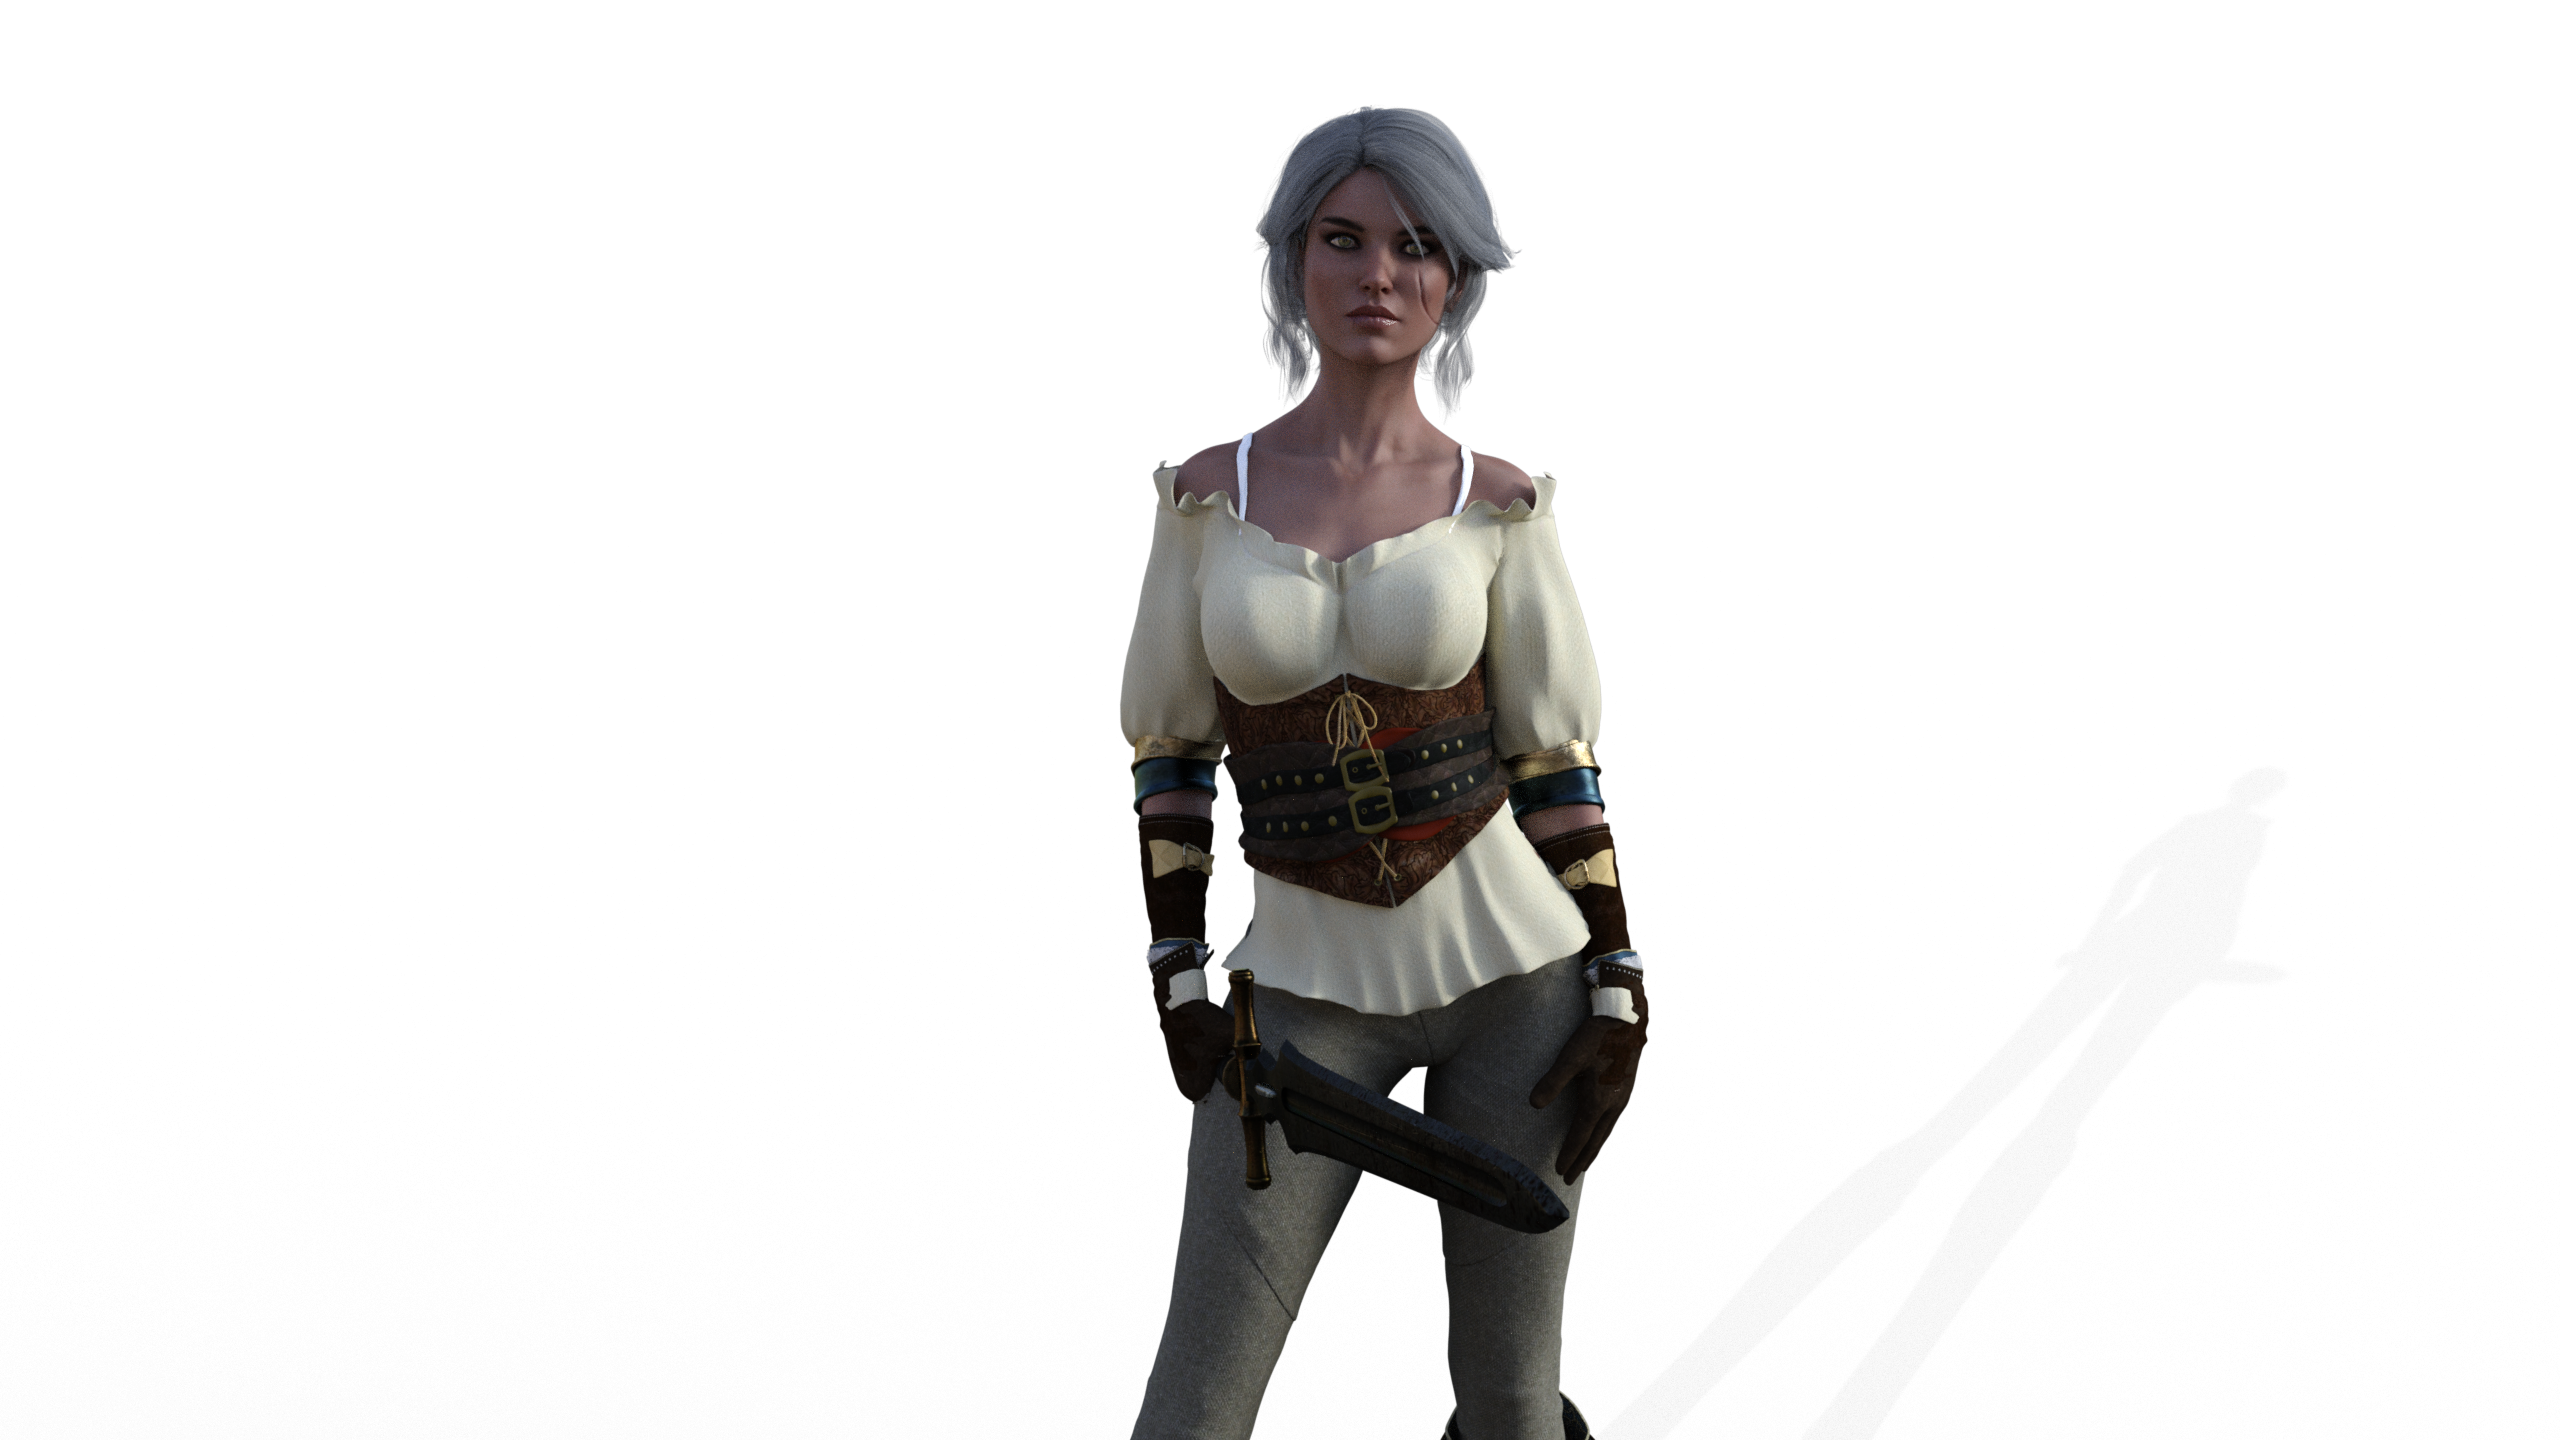 The Witcher 3 Ciri By Ivances D7v55z5 Png 367 1369 The Witcher Warrior Woman Fantasy Girl